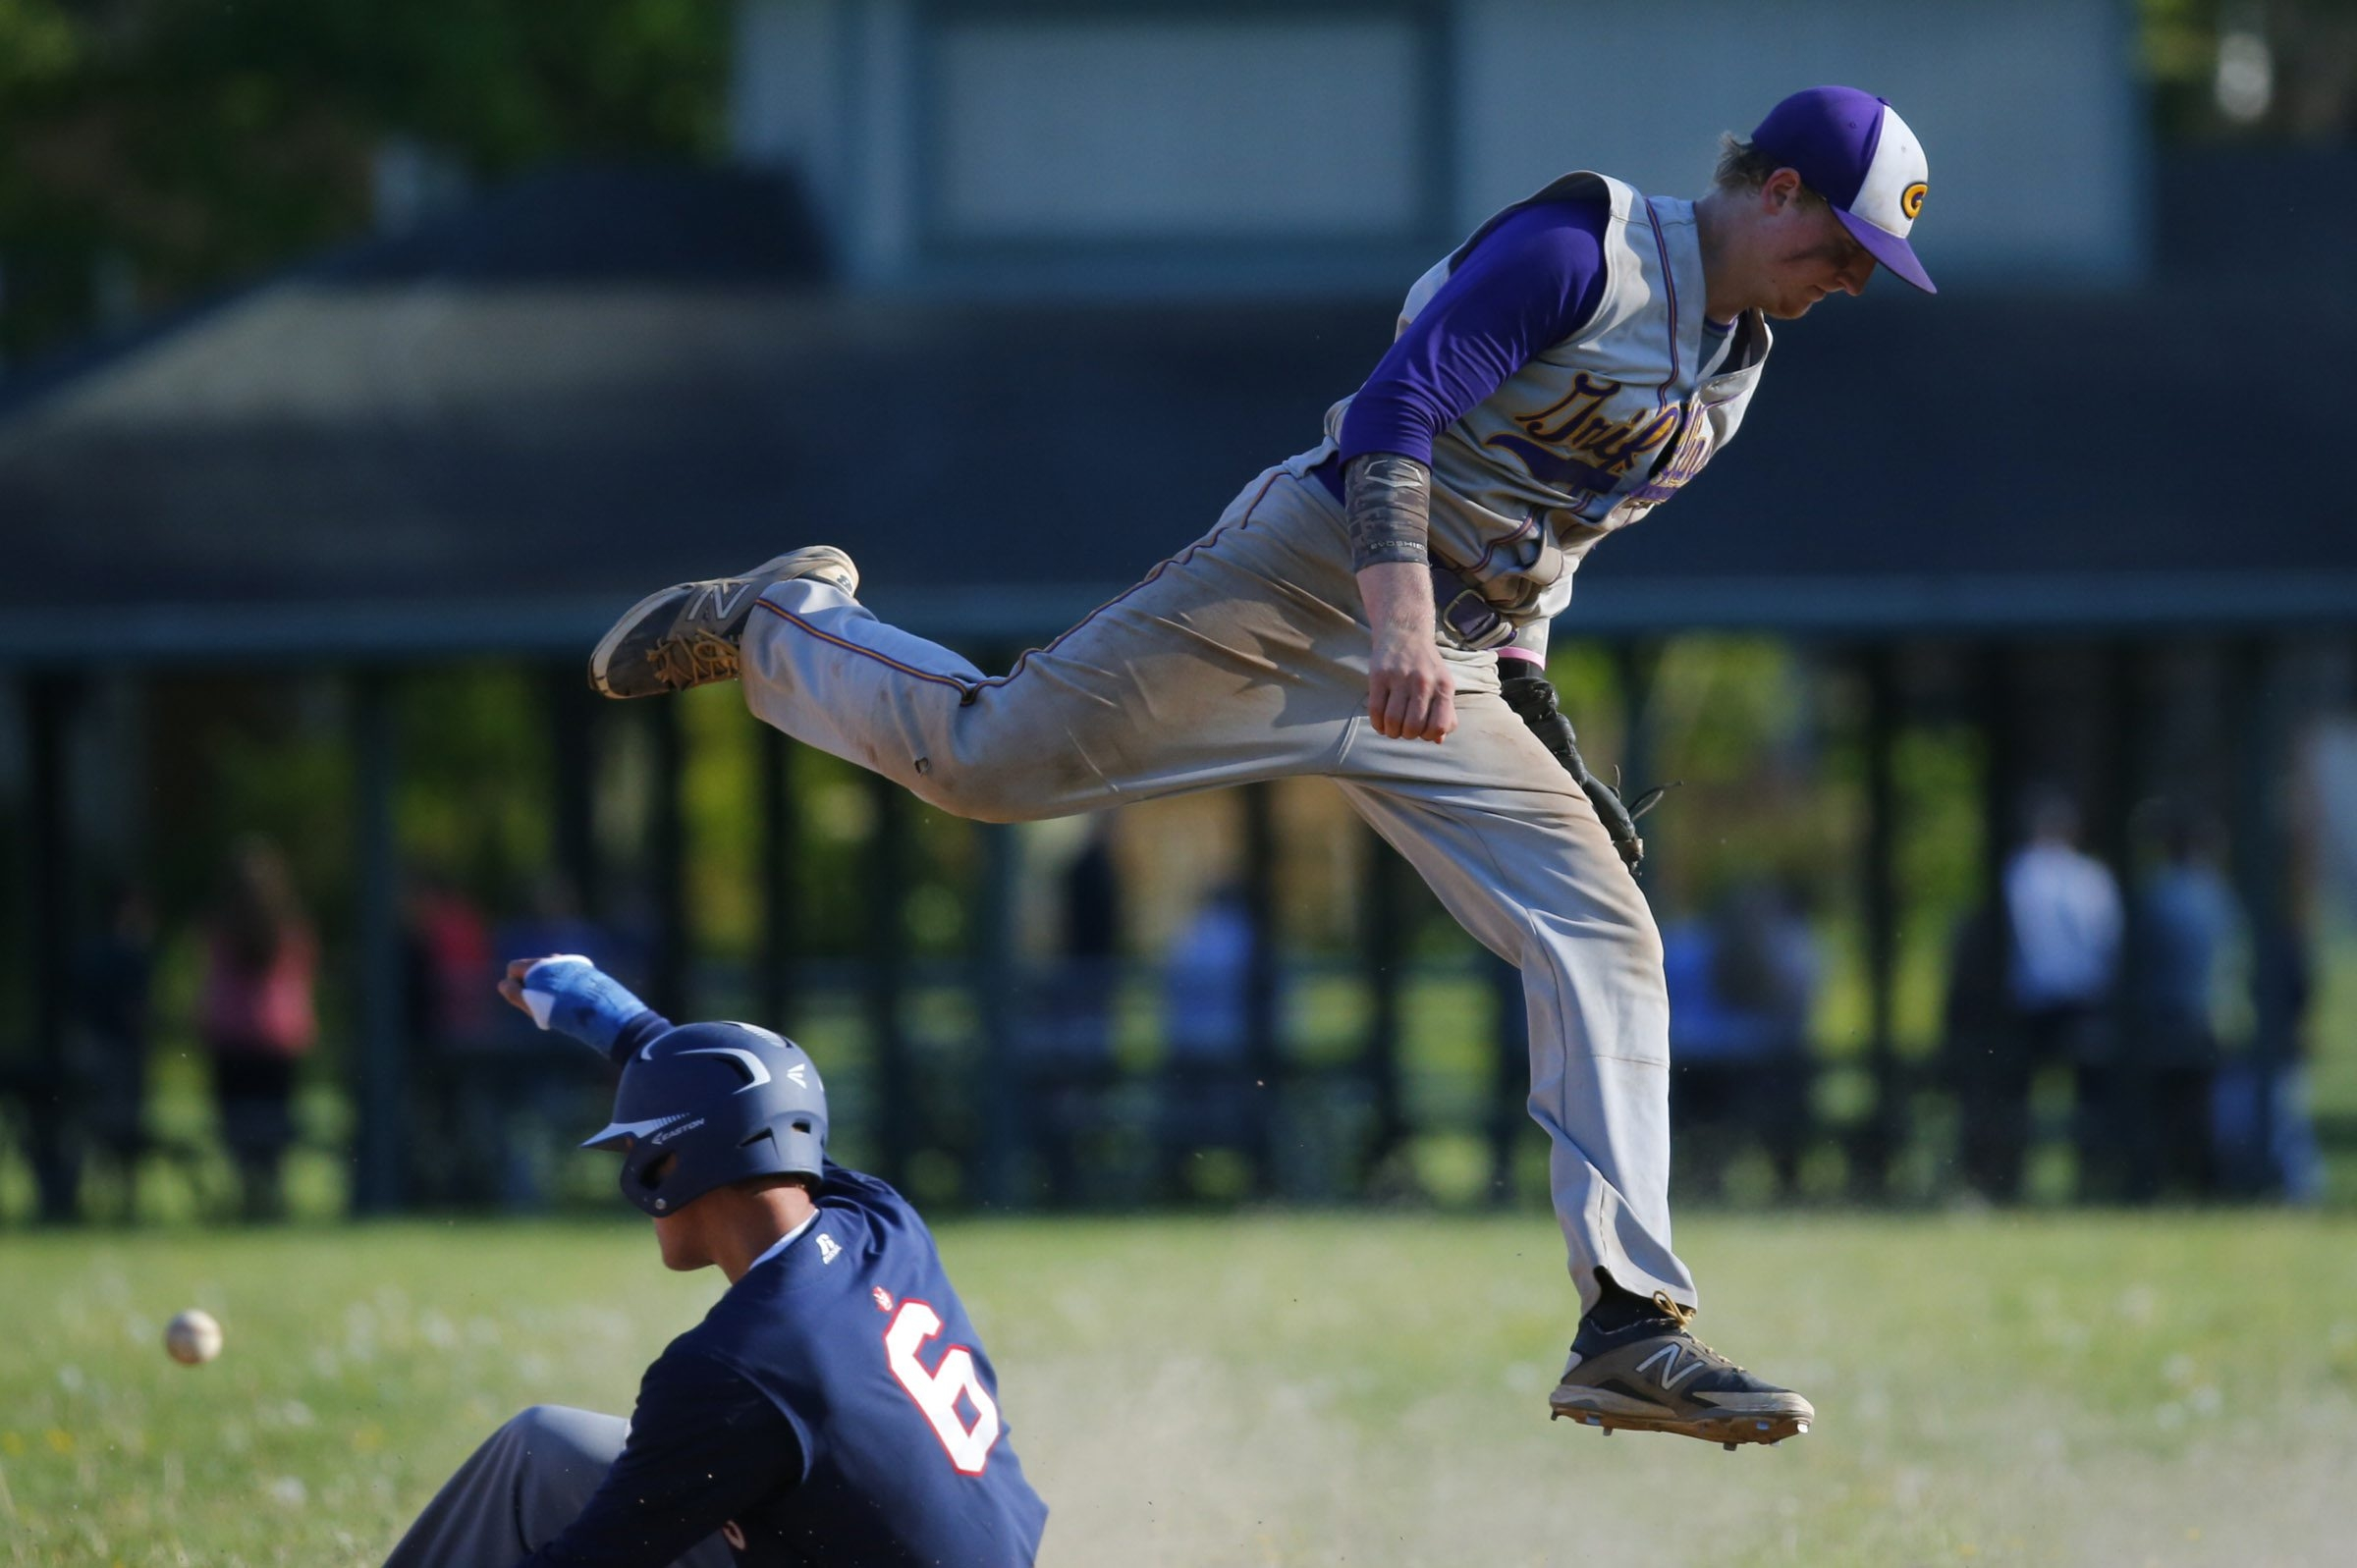 East Aurora's Jack Wolff slides into second base as Springville's Kyle Crotty can't get to the throw during the sixth inning of Thursday's game.